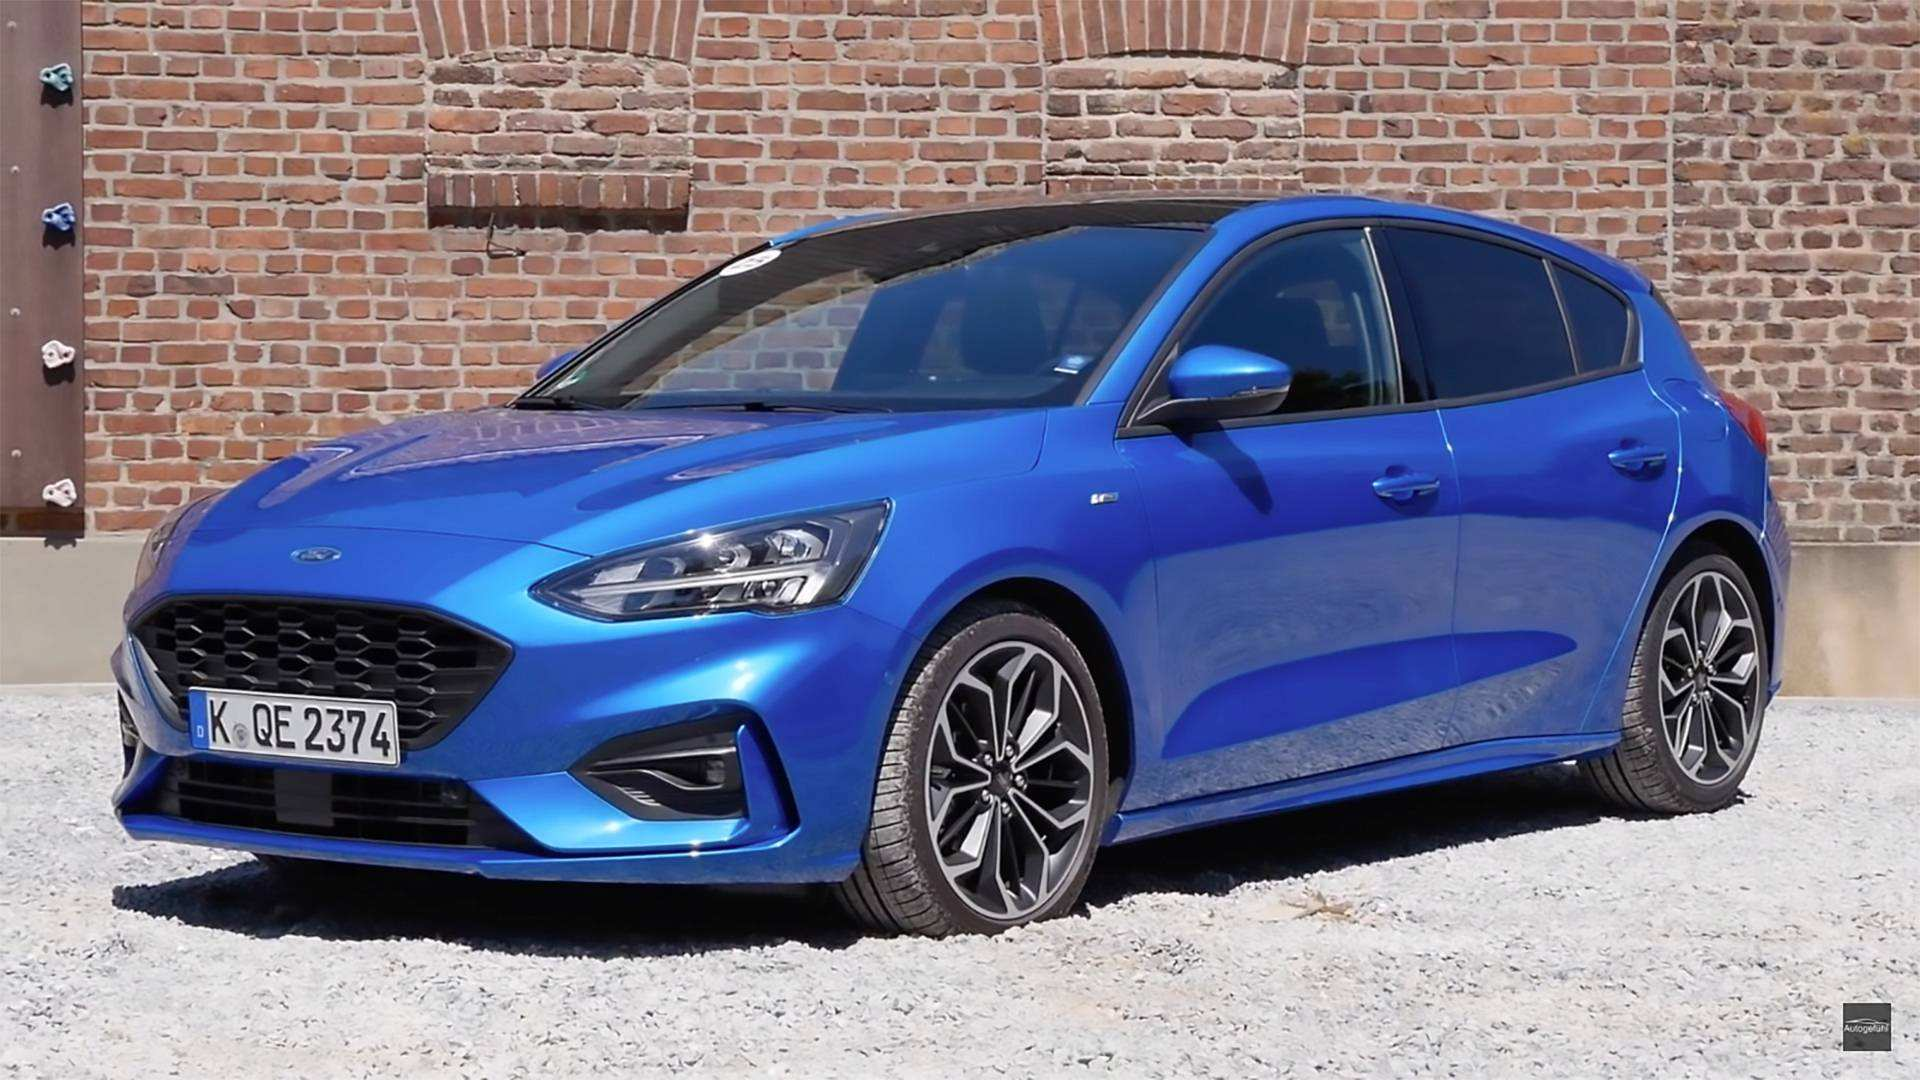 39 Great 2019 Ford Focus St Line Overview for 2019 Ford Focus St Line